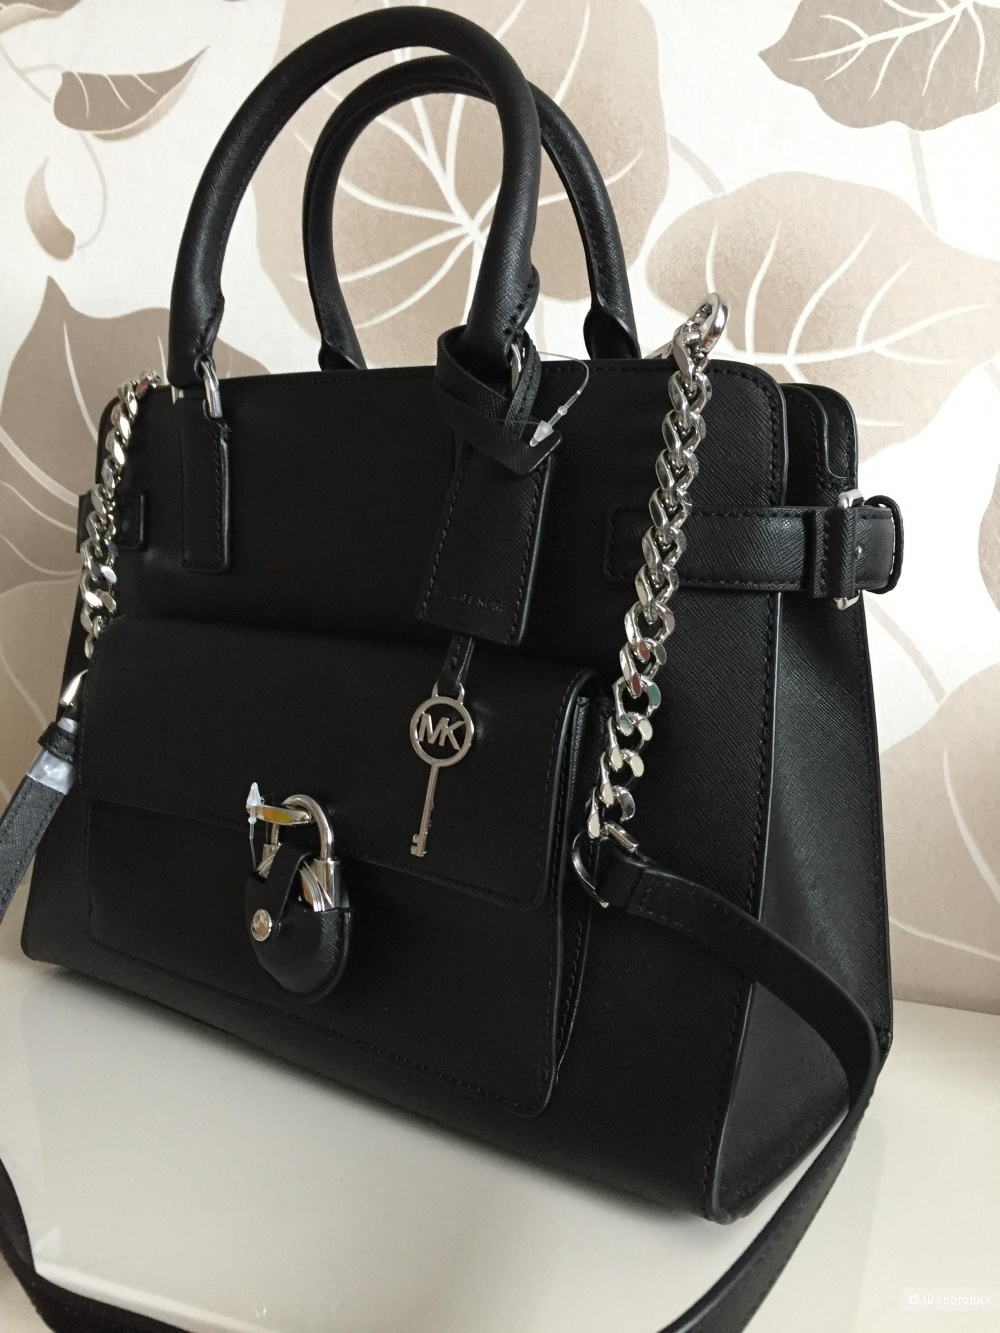 Новая сумка Michael Kors Emma Medium Saffiano leather